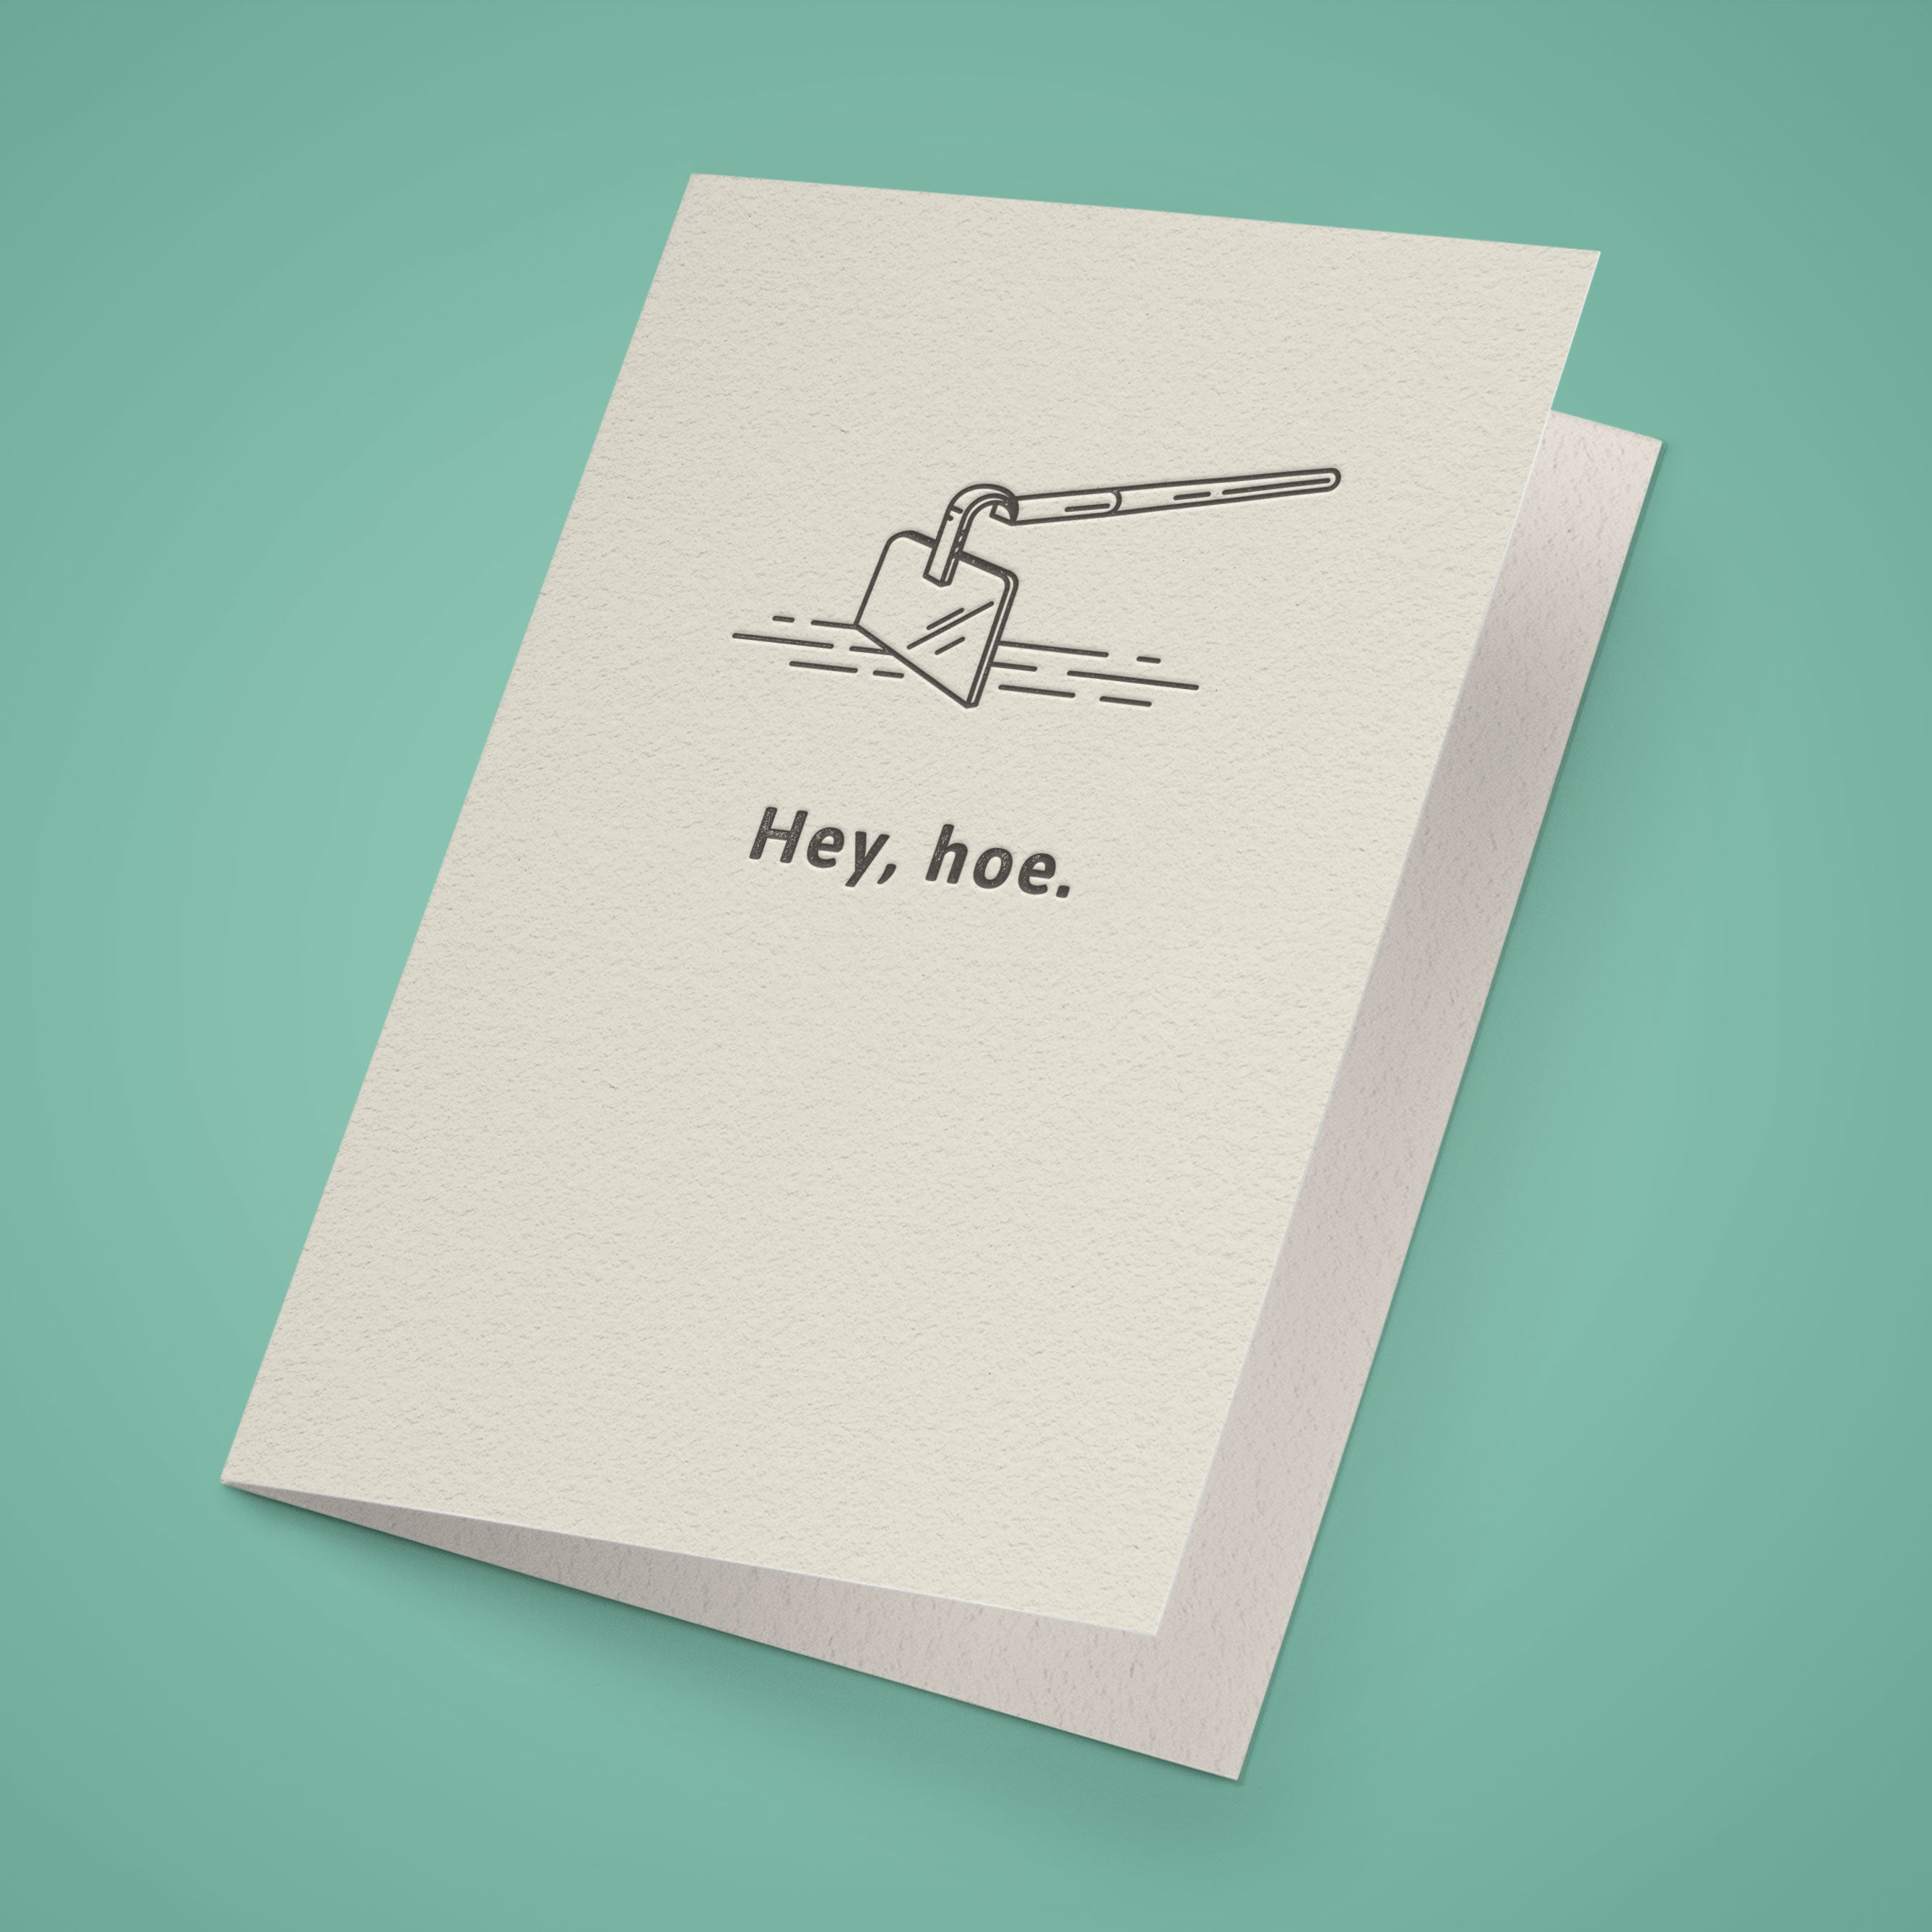 Hey, hoe. Greeting Card